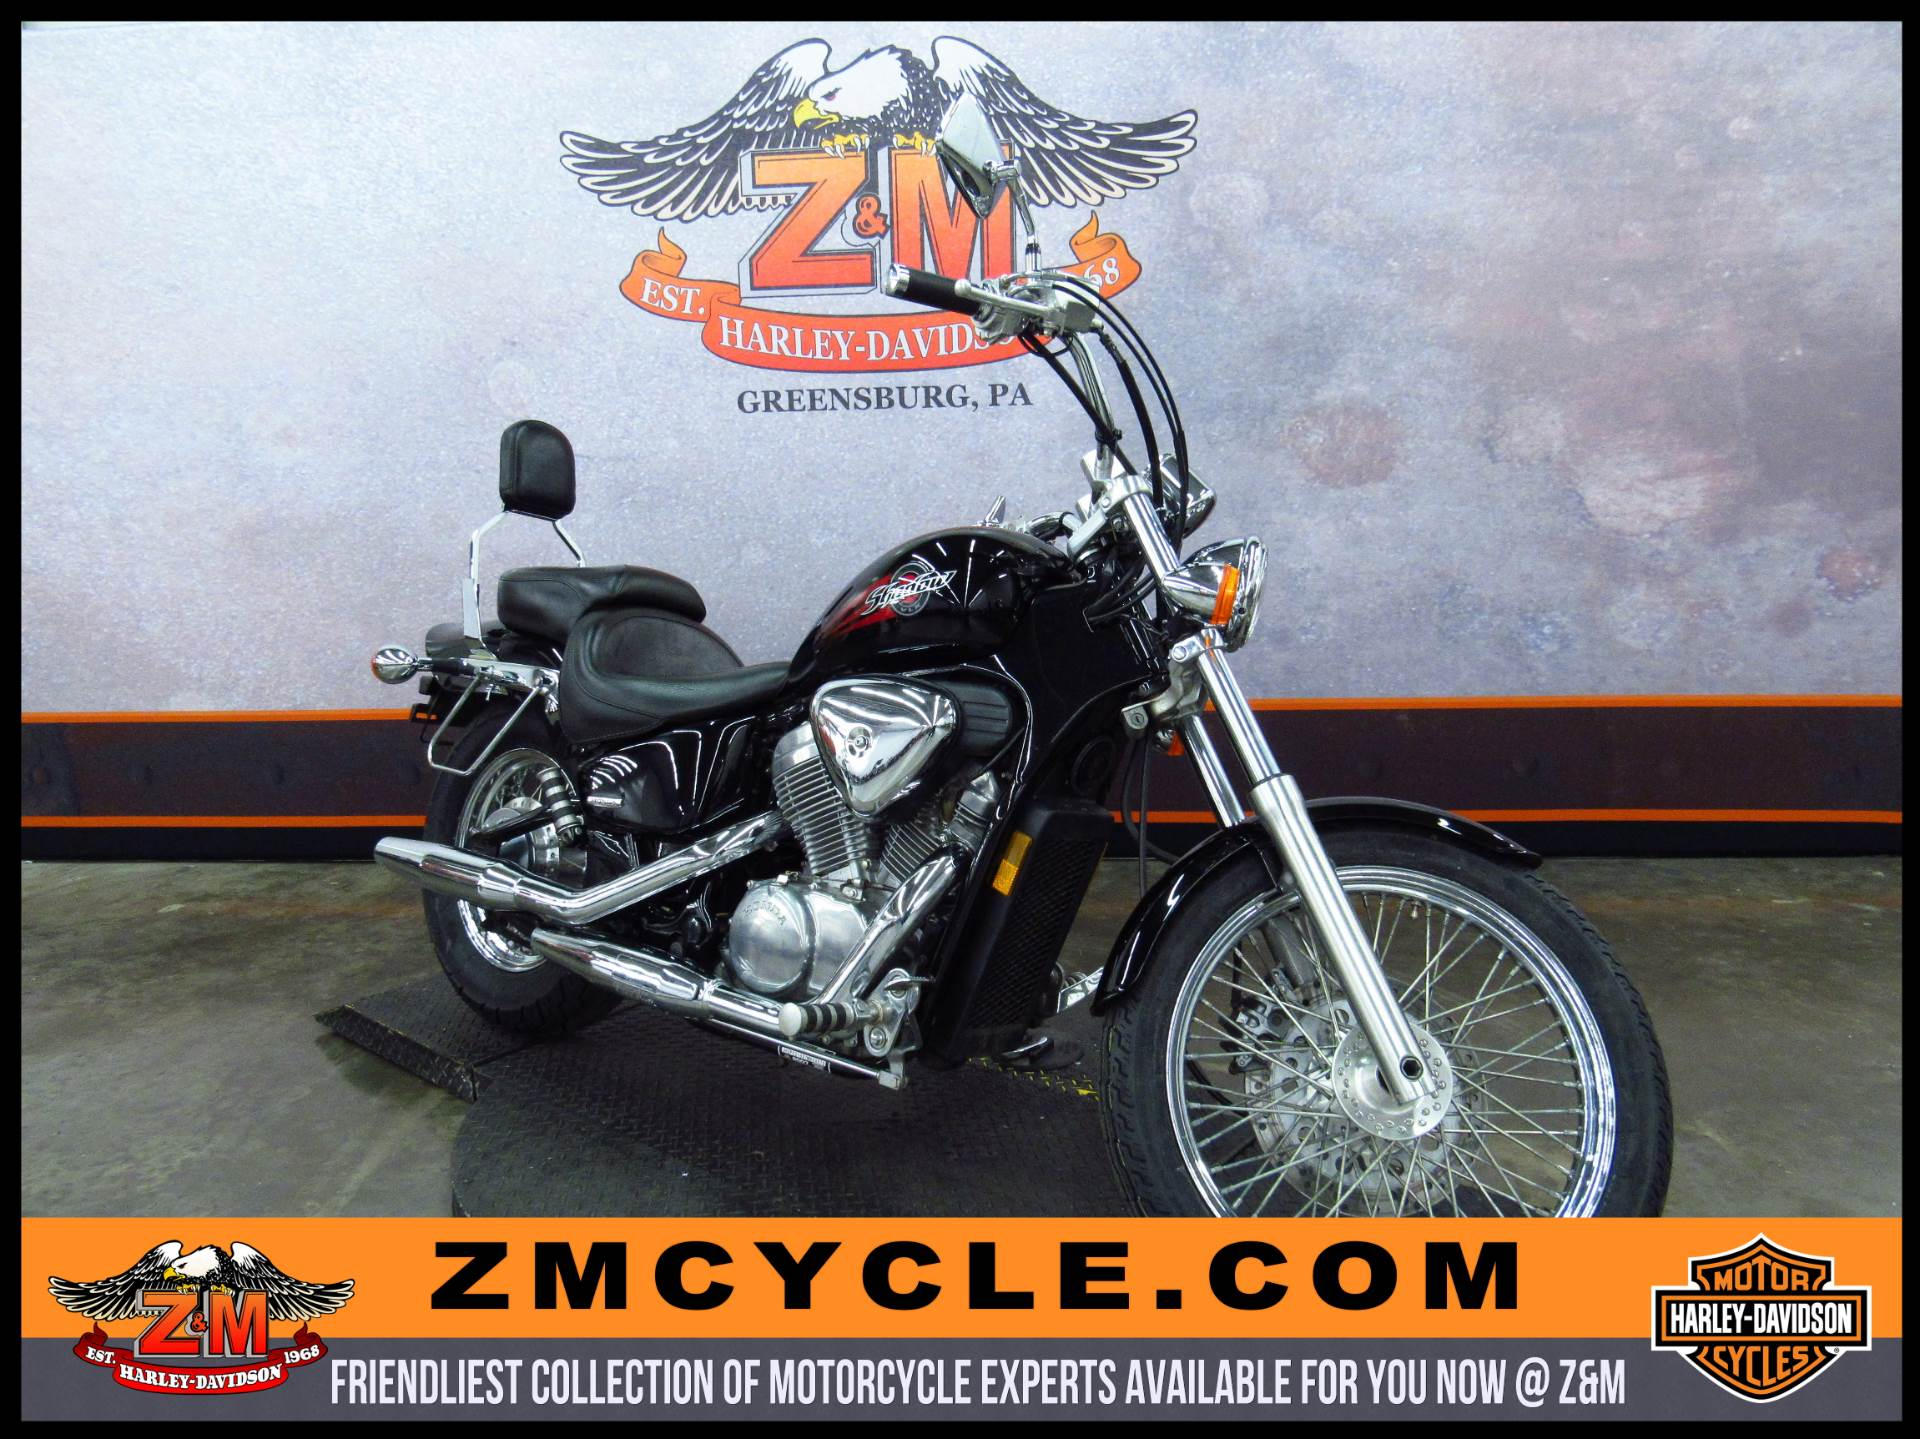 2007 Shadow VLX